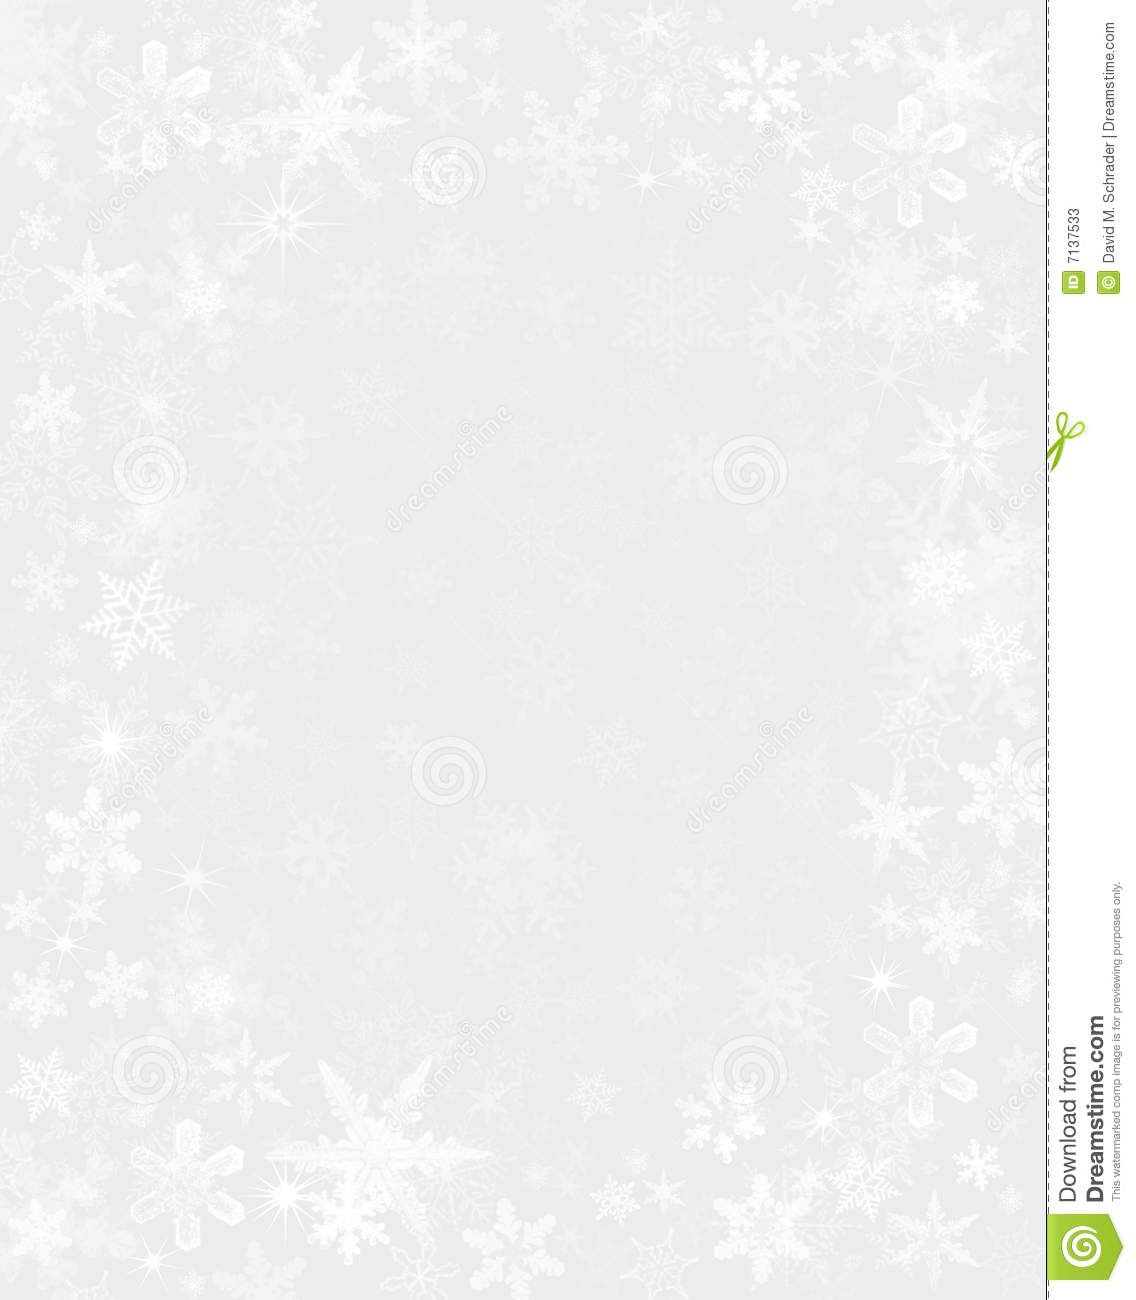 Falling Snow Wallpaper Download Subtle Snow Background Stock Photos Image 7137533